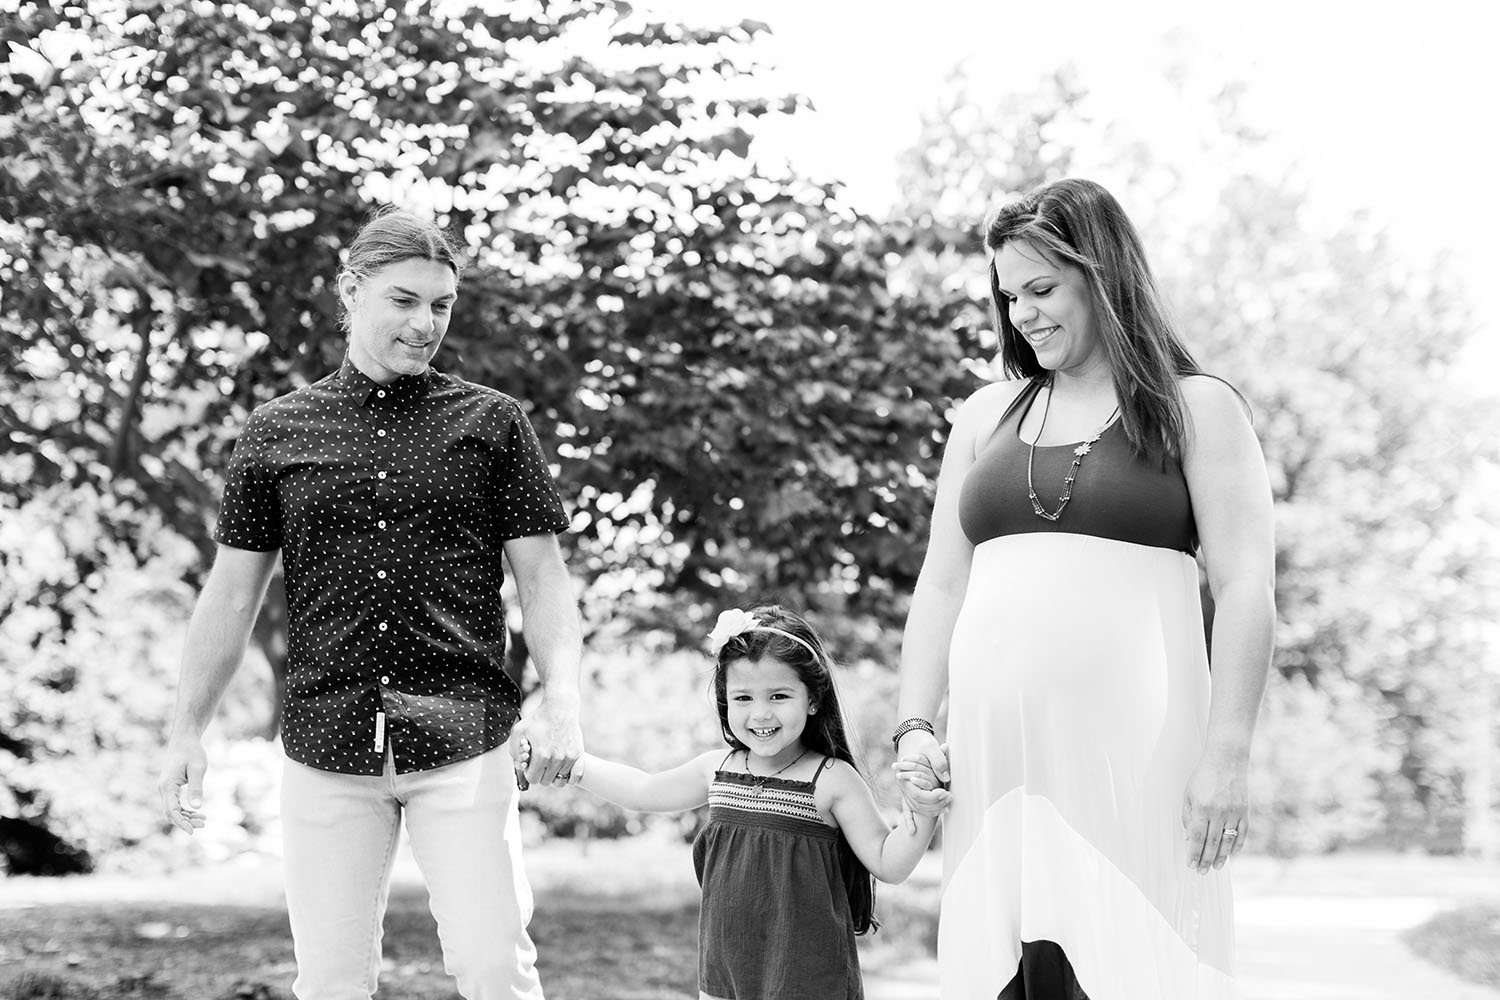 st-louis-maternity-photographer003a